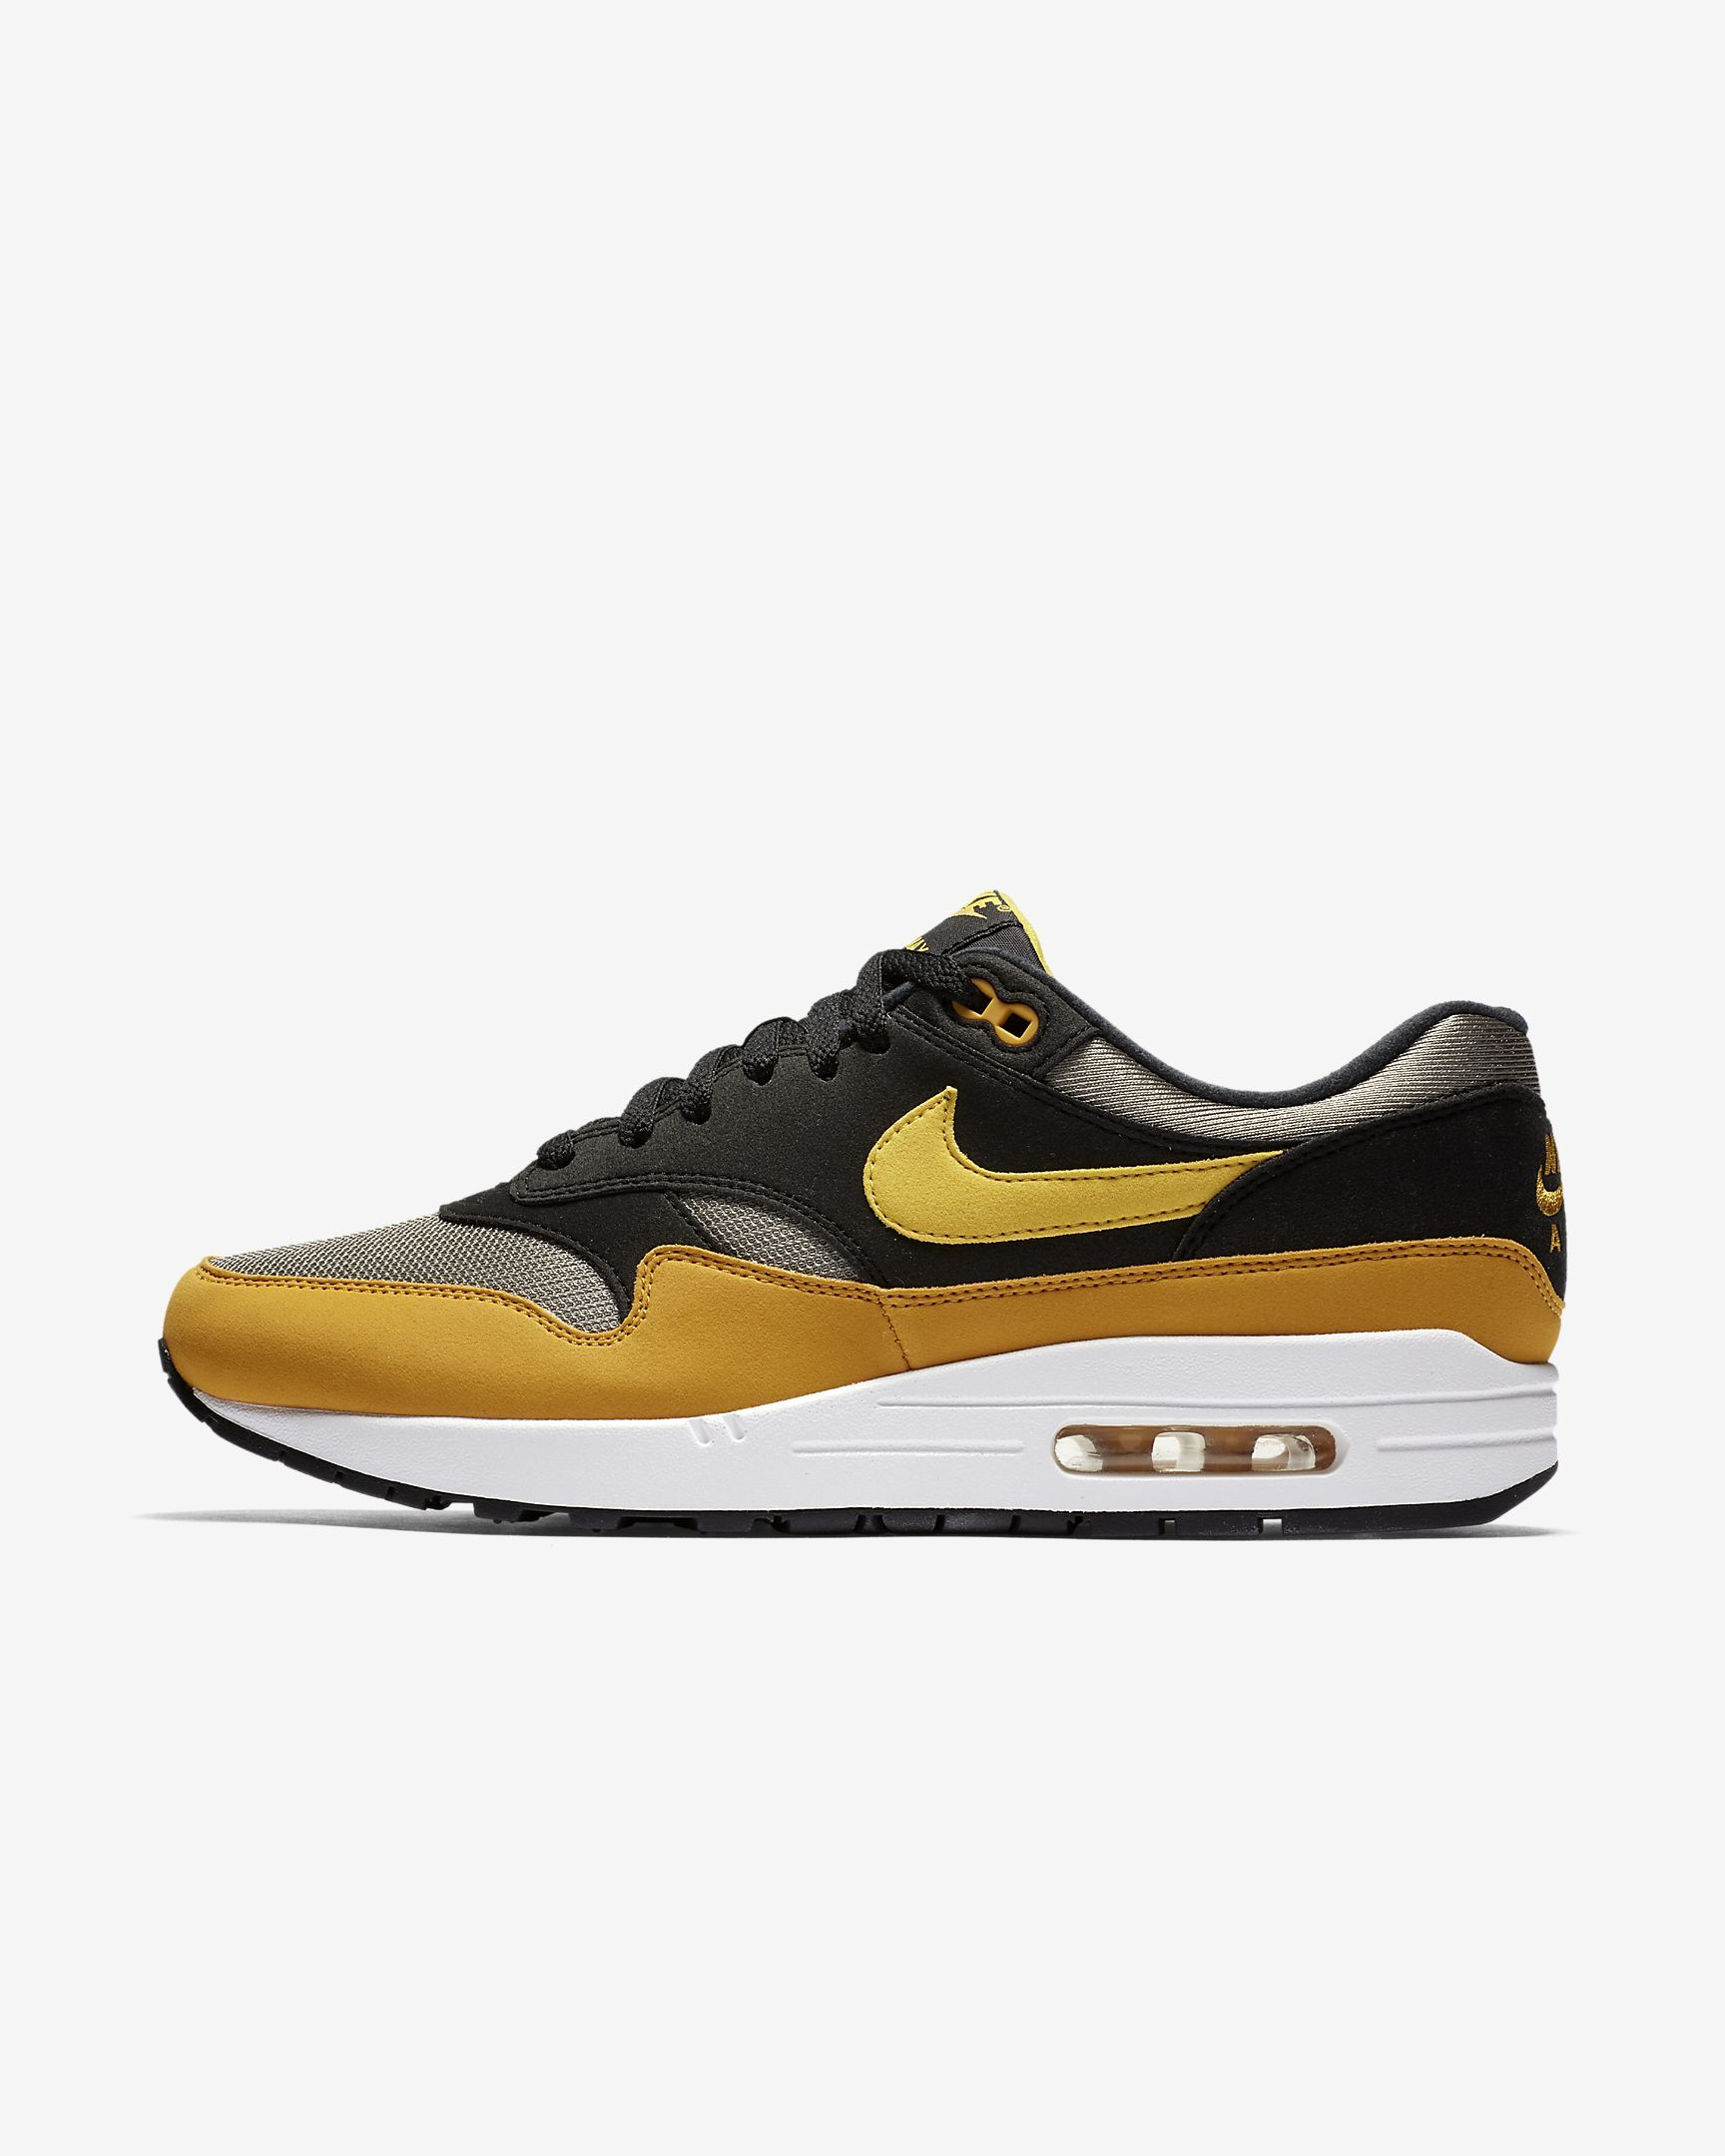 the best attitude 32ceb dfe56 Chaussure Nike Air Max 1 pour Homme